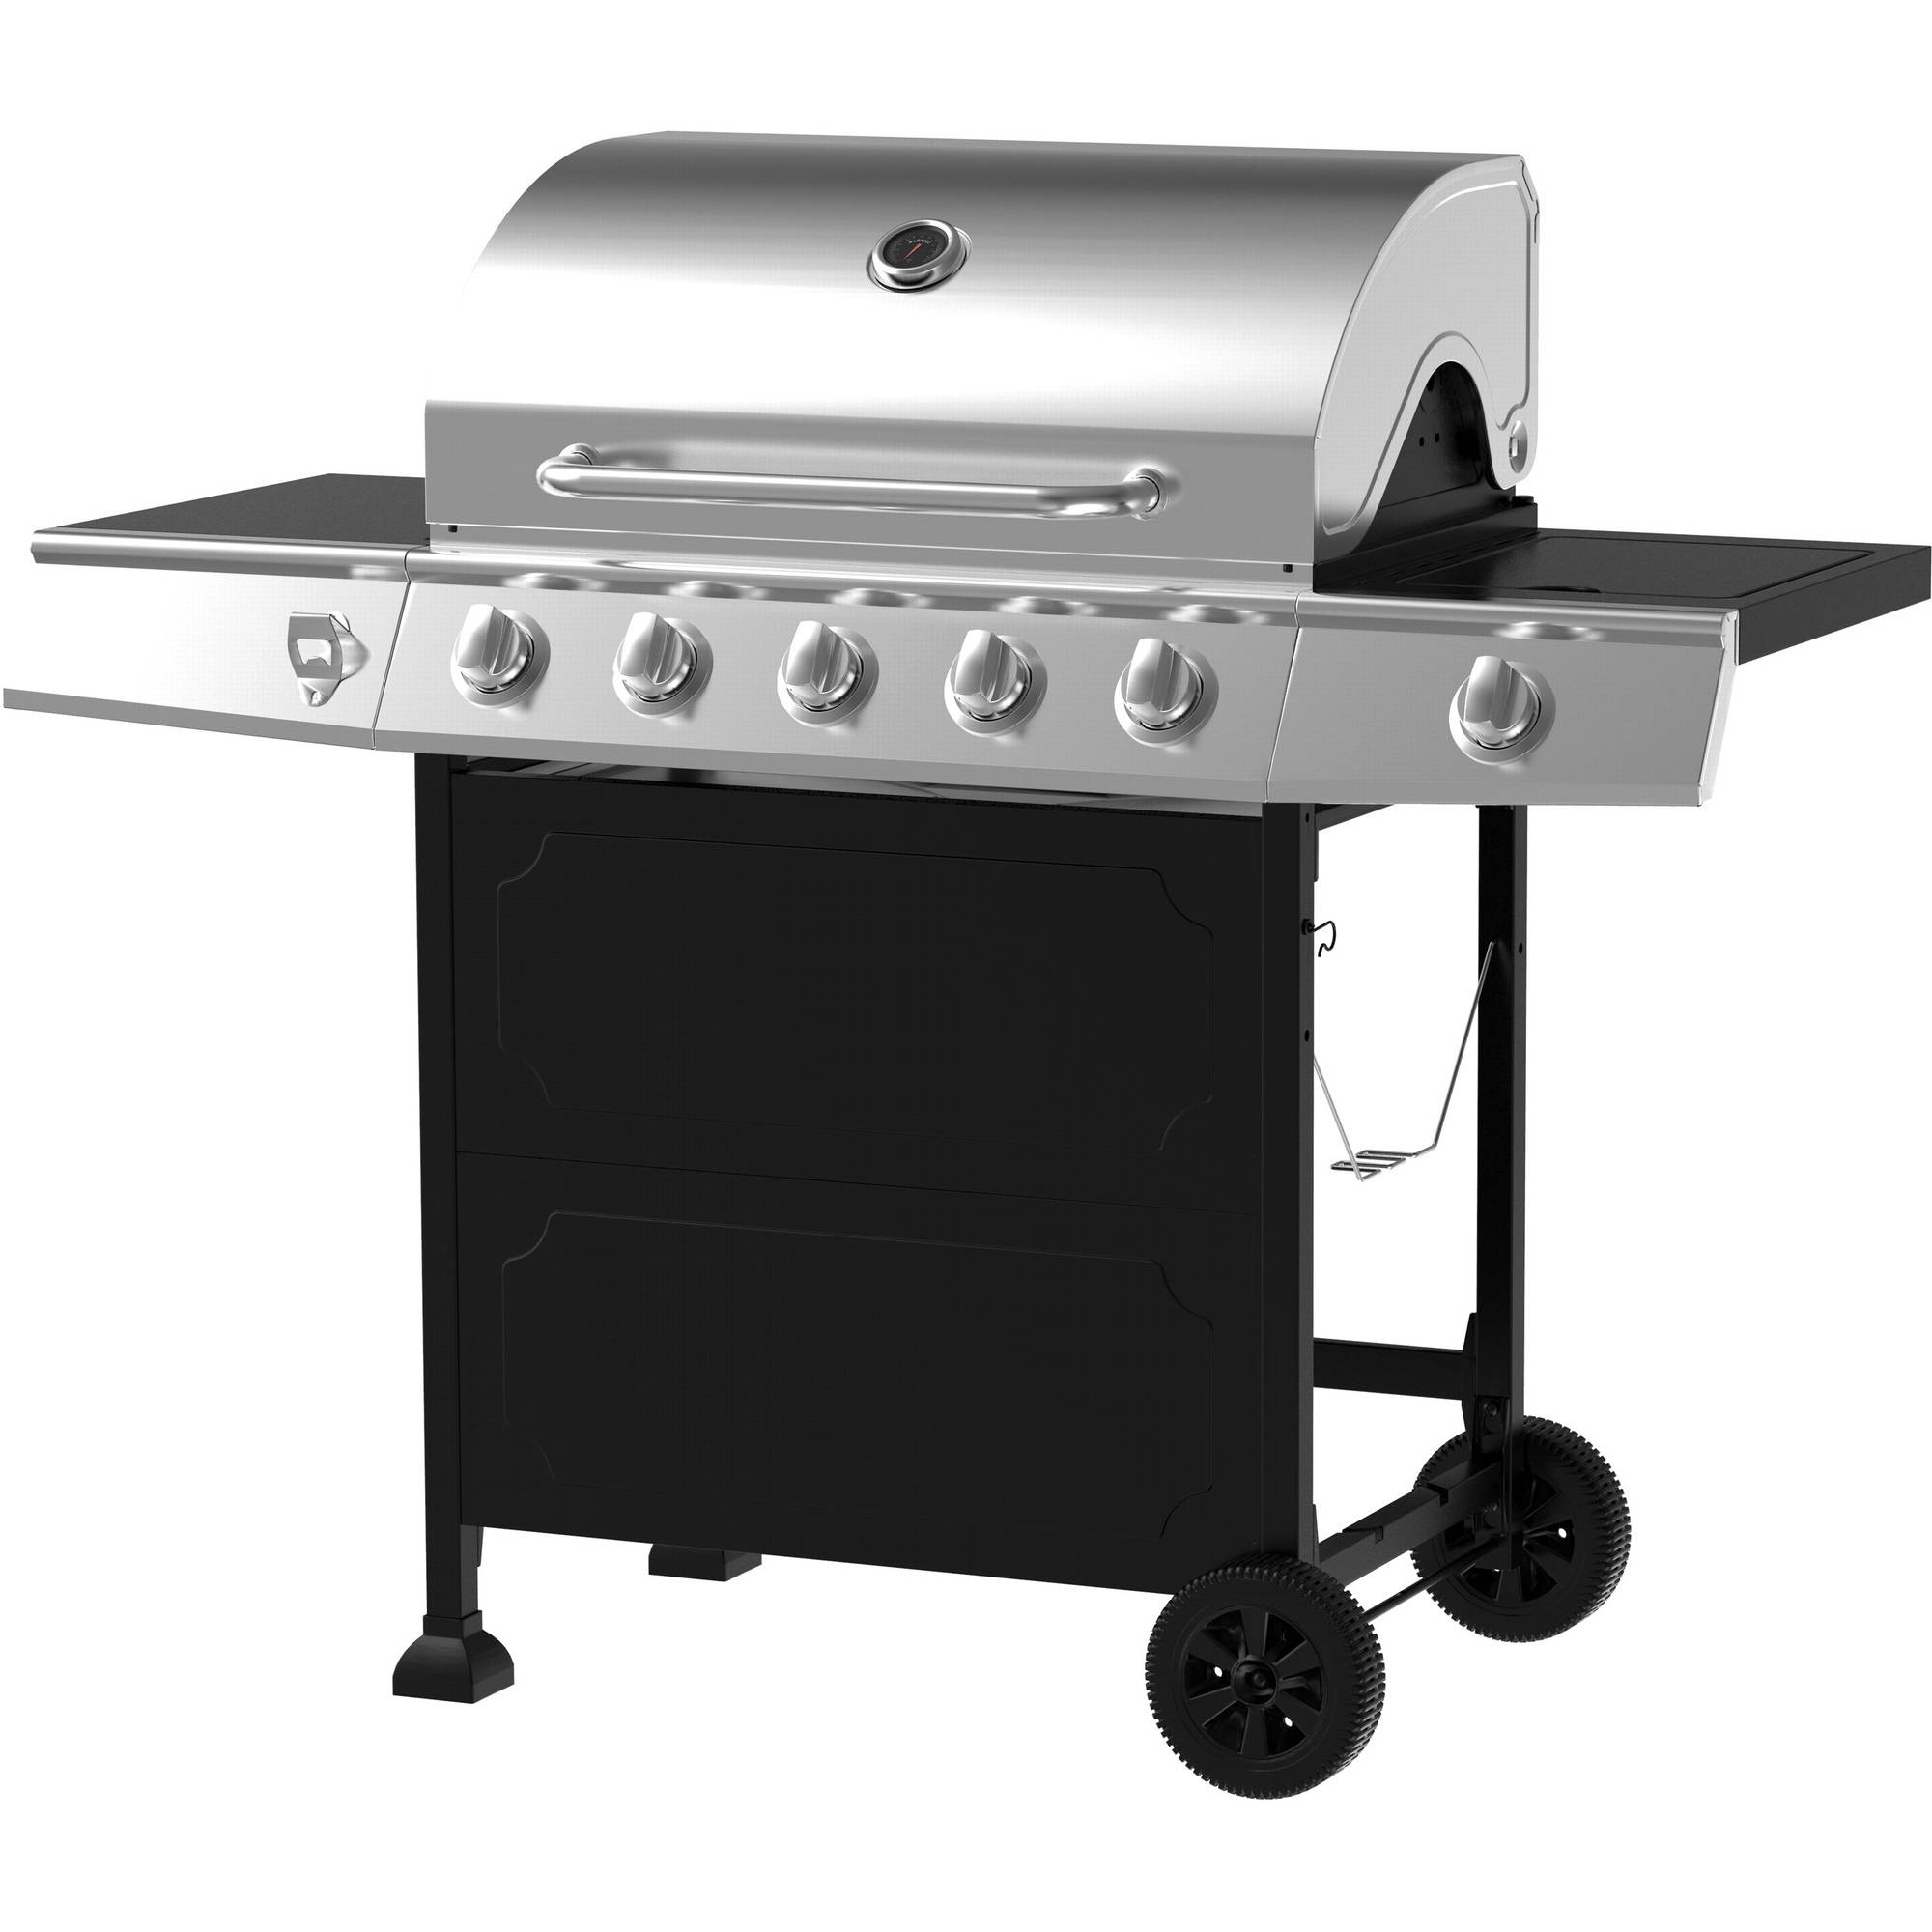 Walmart 5-Burner Gas Grill, Stainless Steel/Black